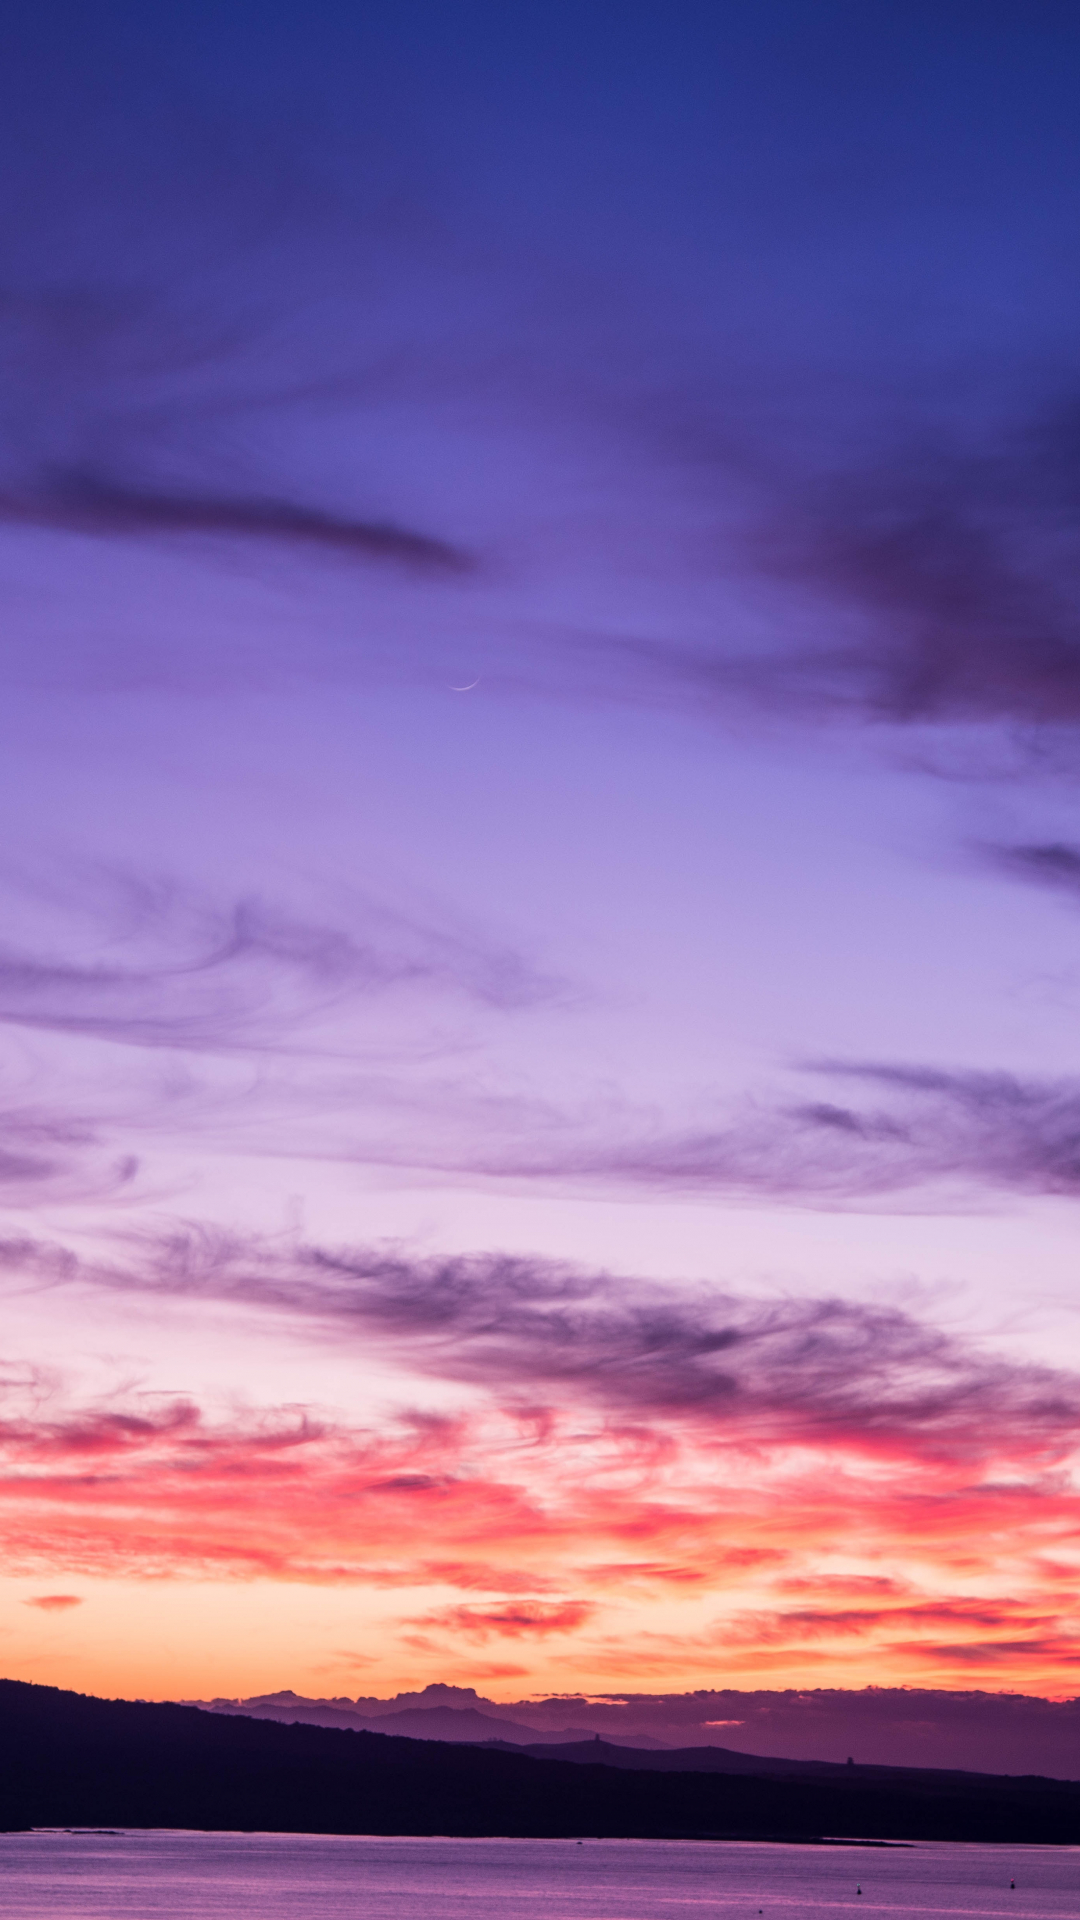 Cloud And Sky HD iPhone Wallpaper